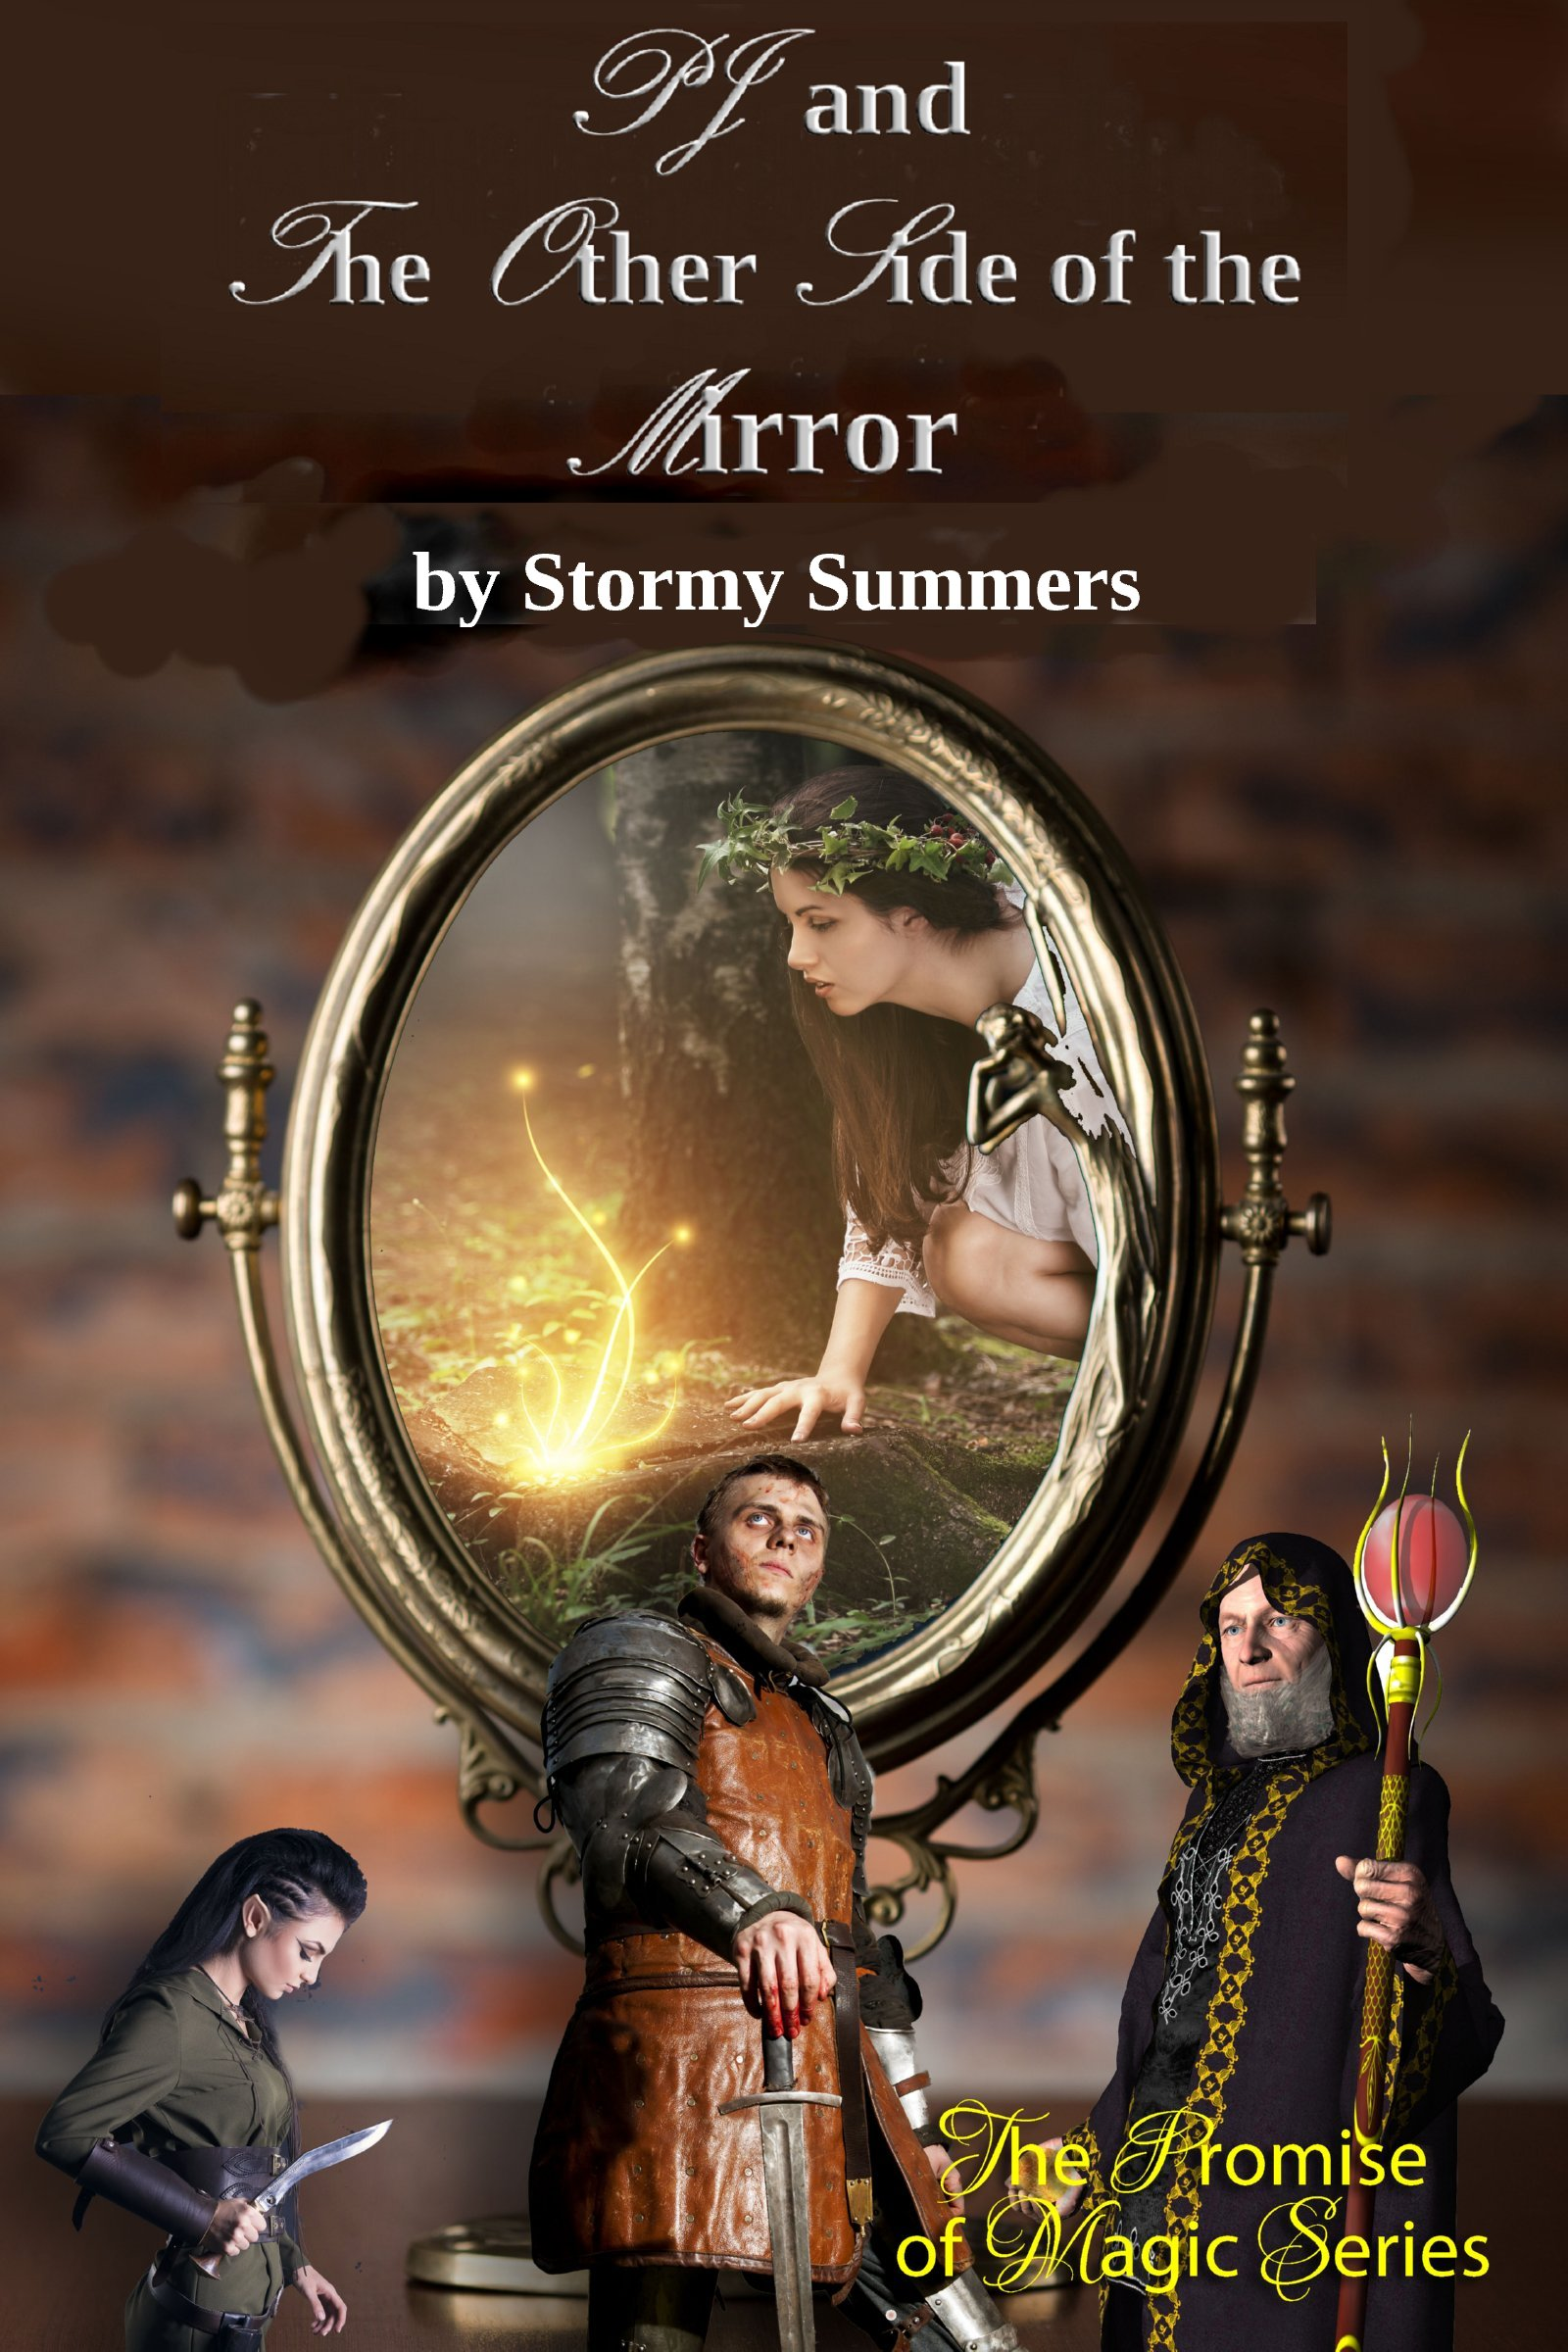 PJ and the Other Side of the Mirror by Stormy Summers